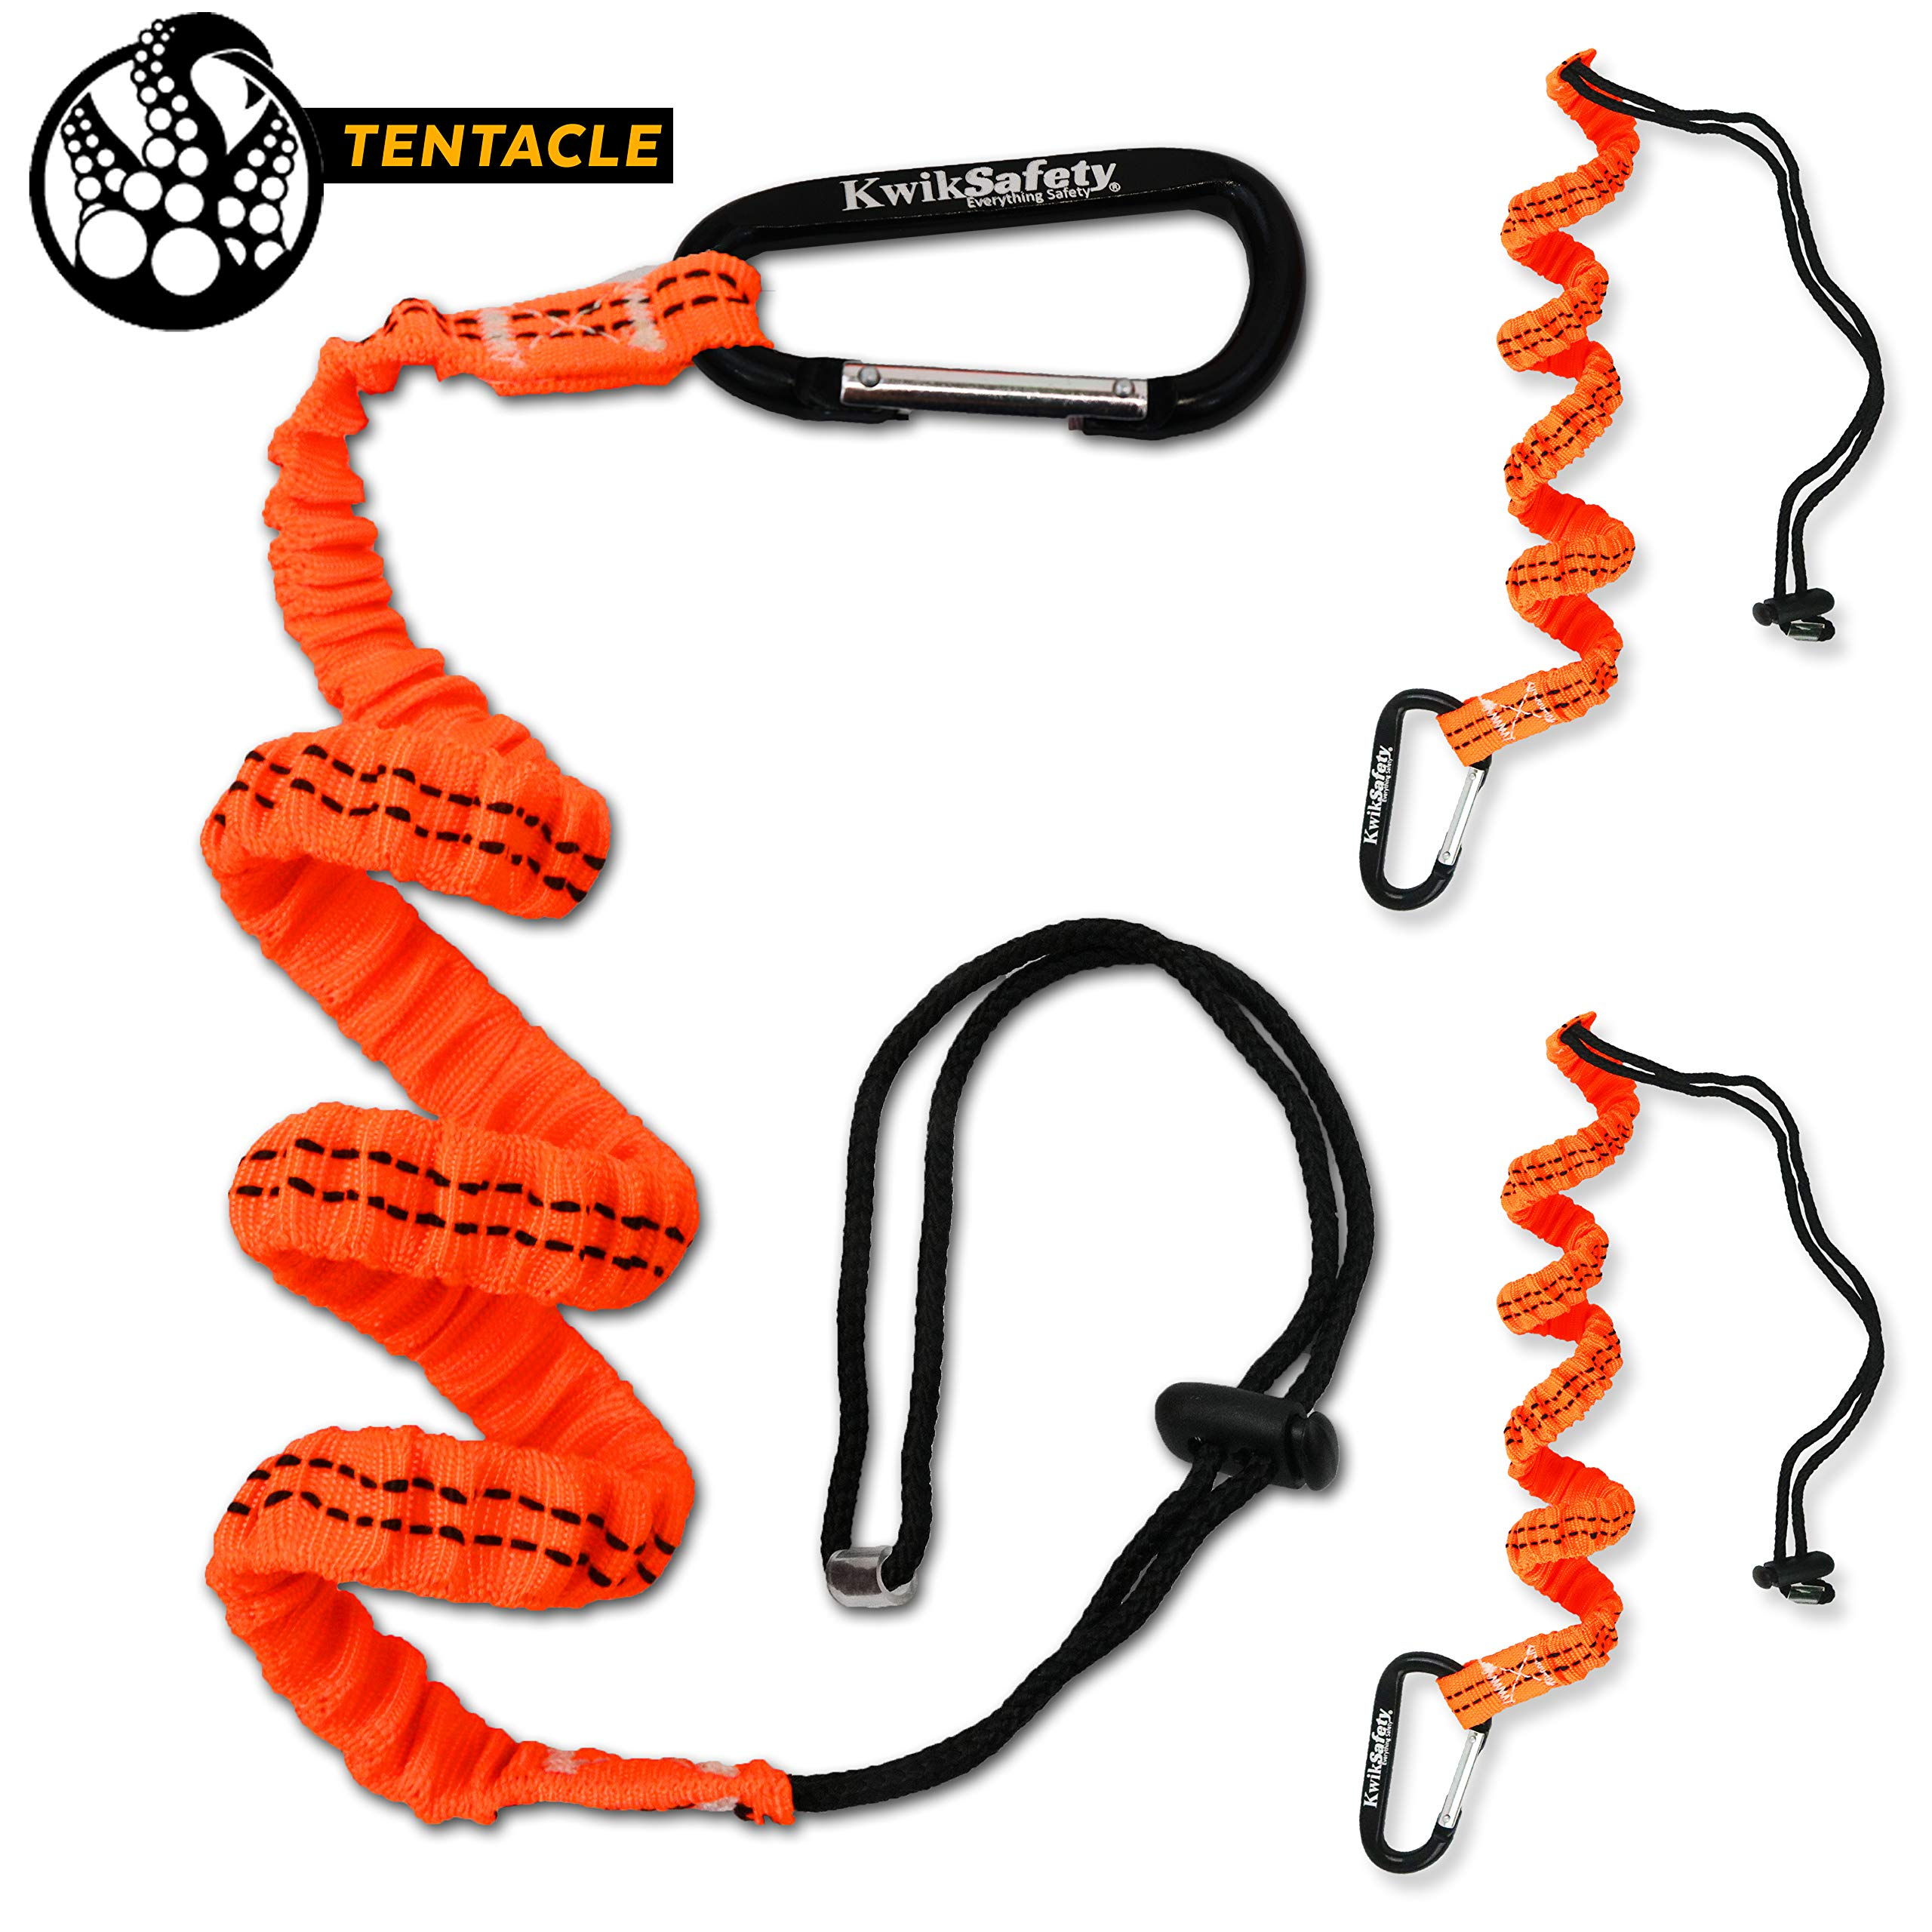 KwikSafety (Charlotte, NC) TENTACLE (3 PACK) Light Duty Tool Lanyard with Aluminum Carabineer Clip Coiled Retractable Bungee Cord with Loop & Adjustable Lock Fall Protection | 20 lb Working Limit